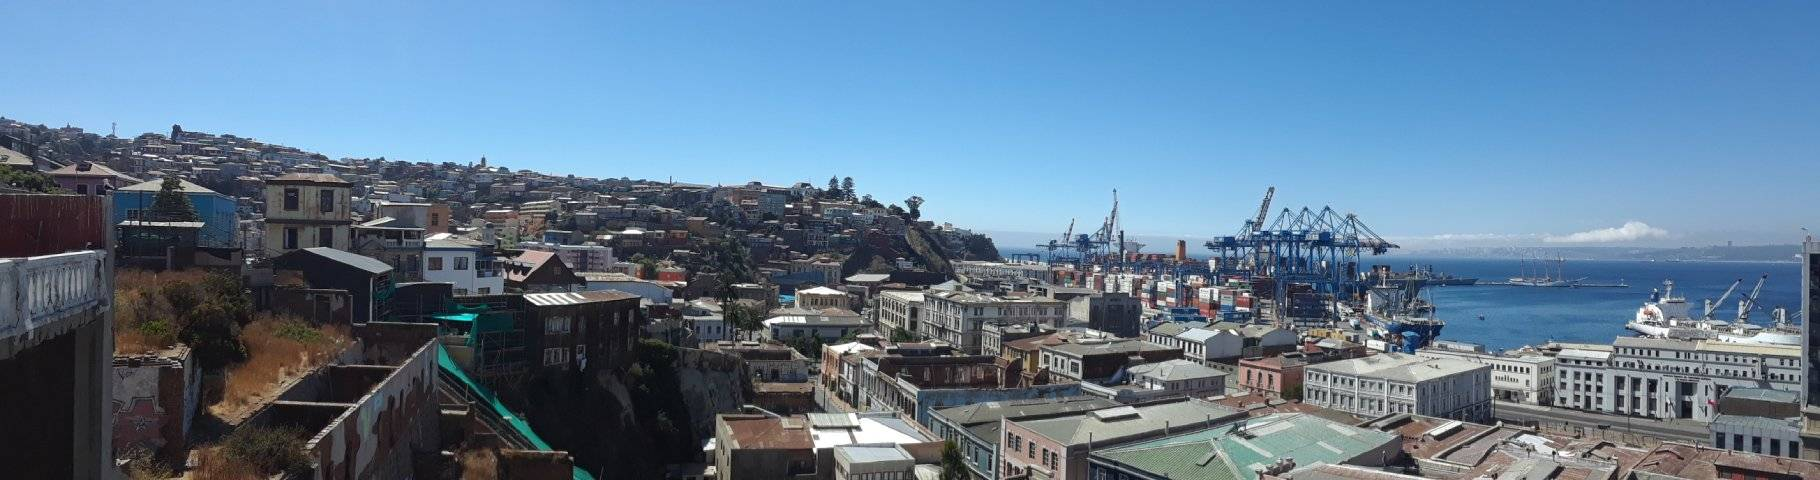 A view of Valparaiso from a hillside location